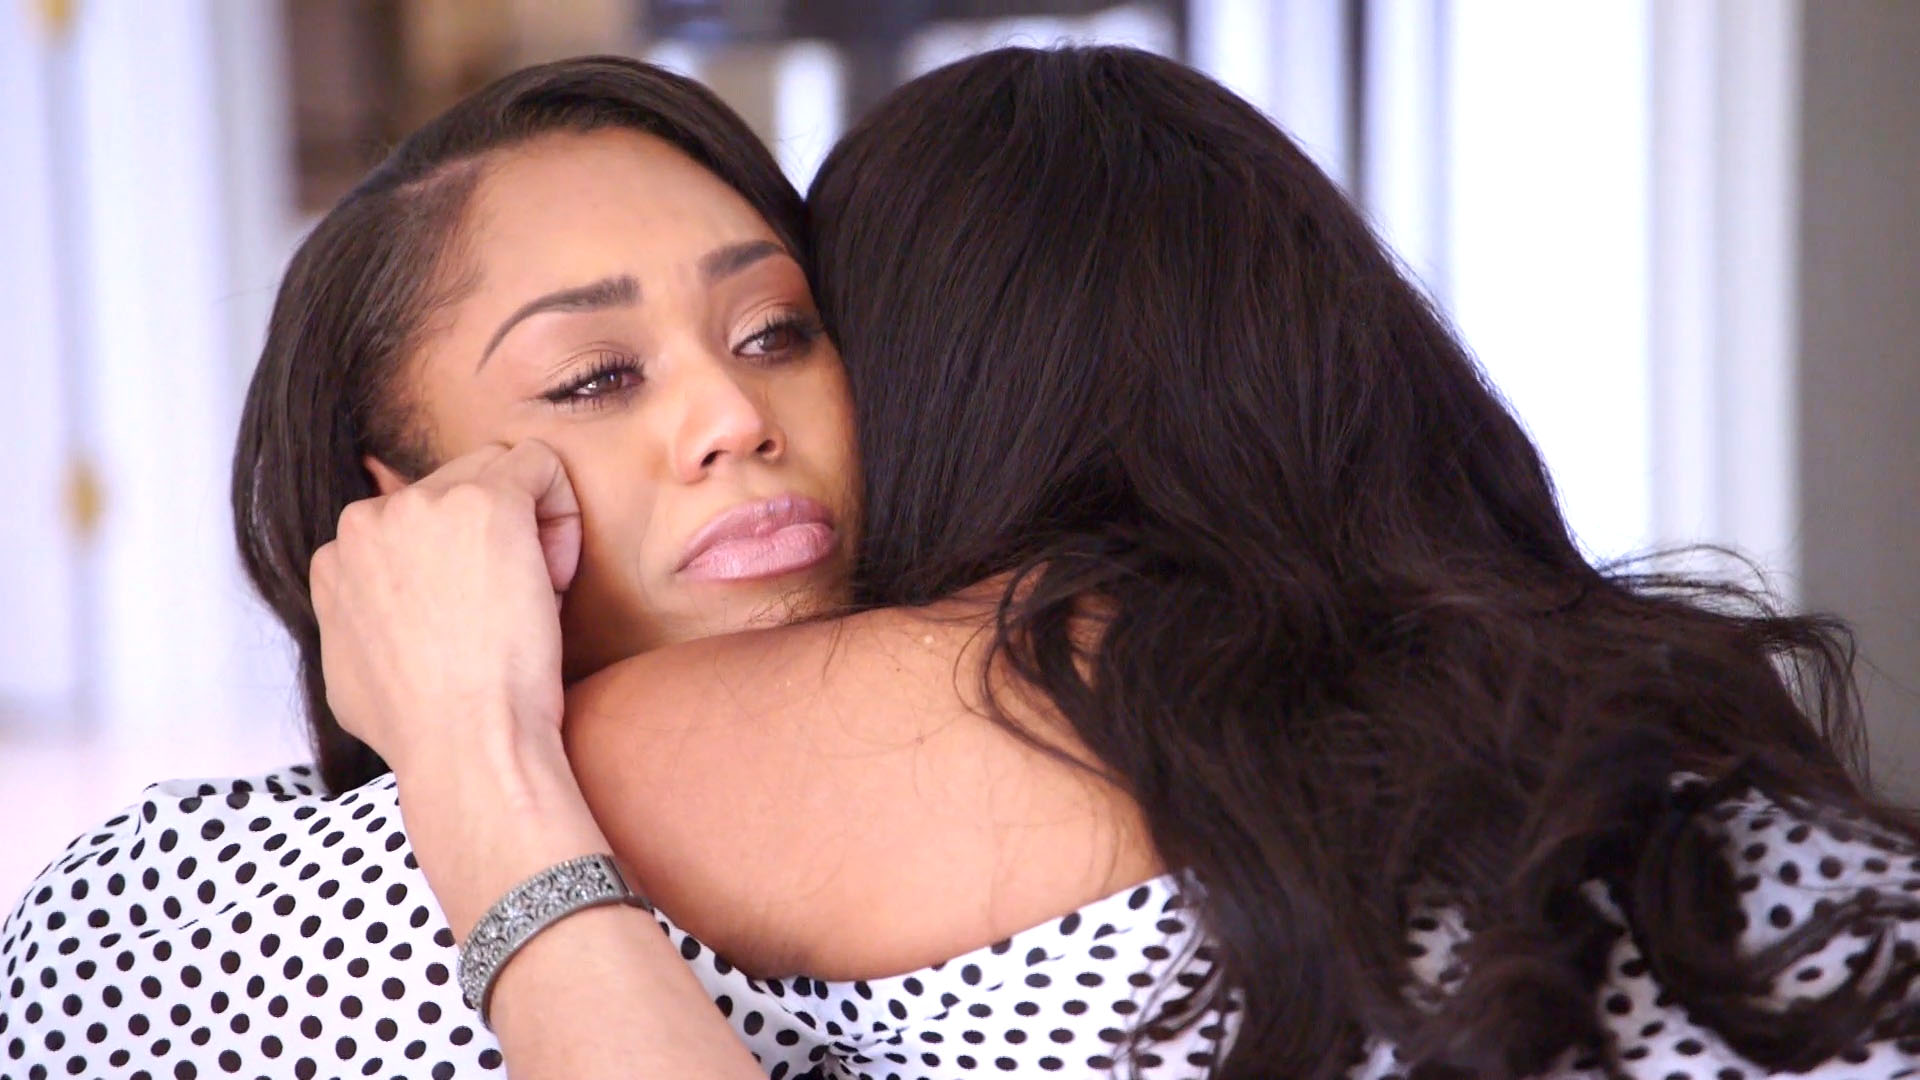 Monique Samuels Breaks Down Over Her Friendship With Charrisse Jackson Jordan